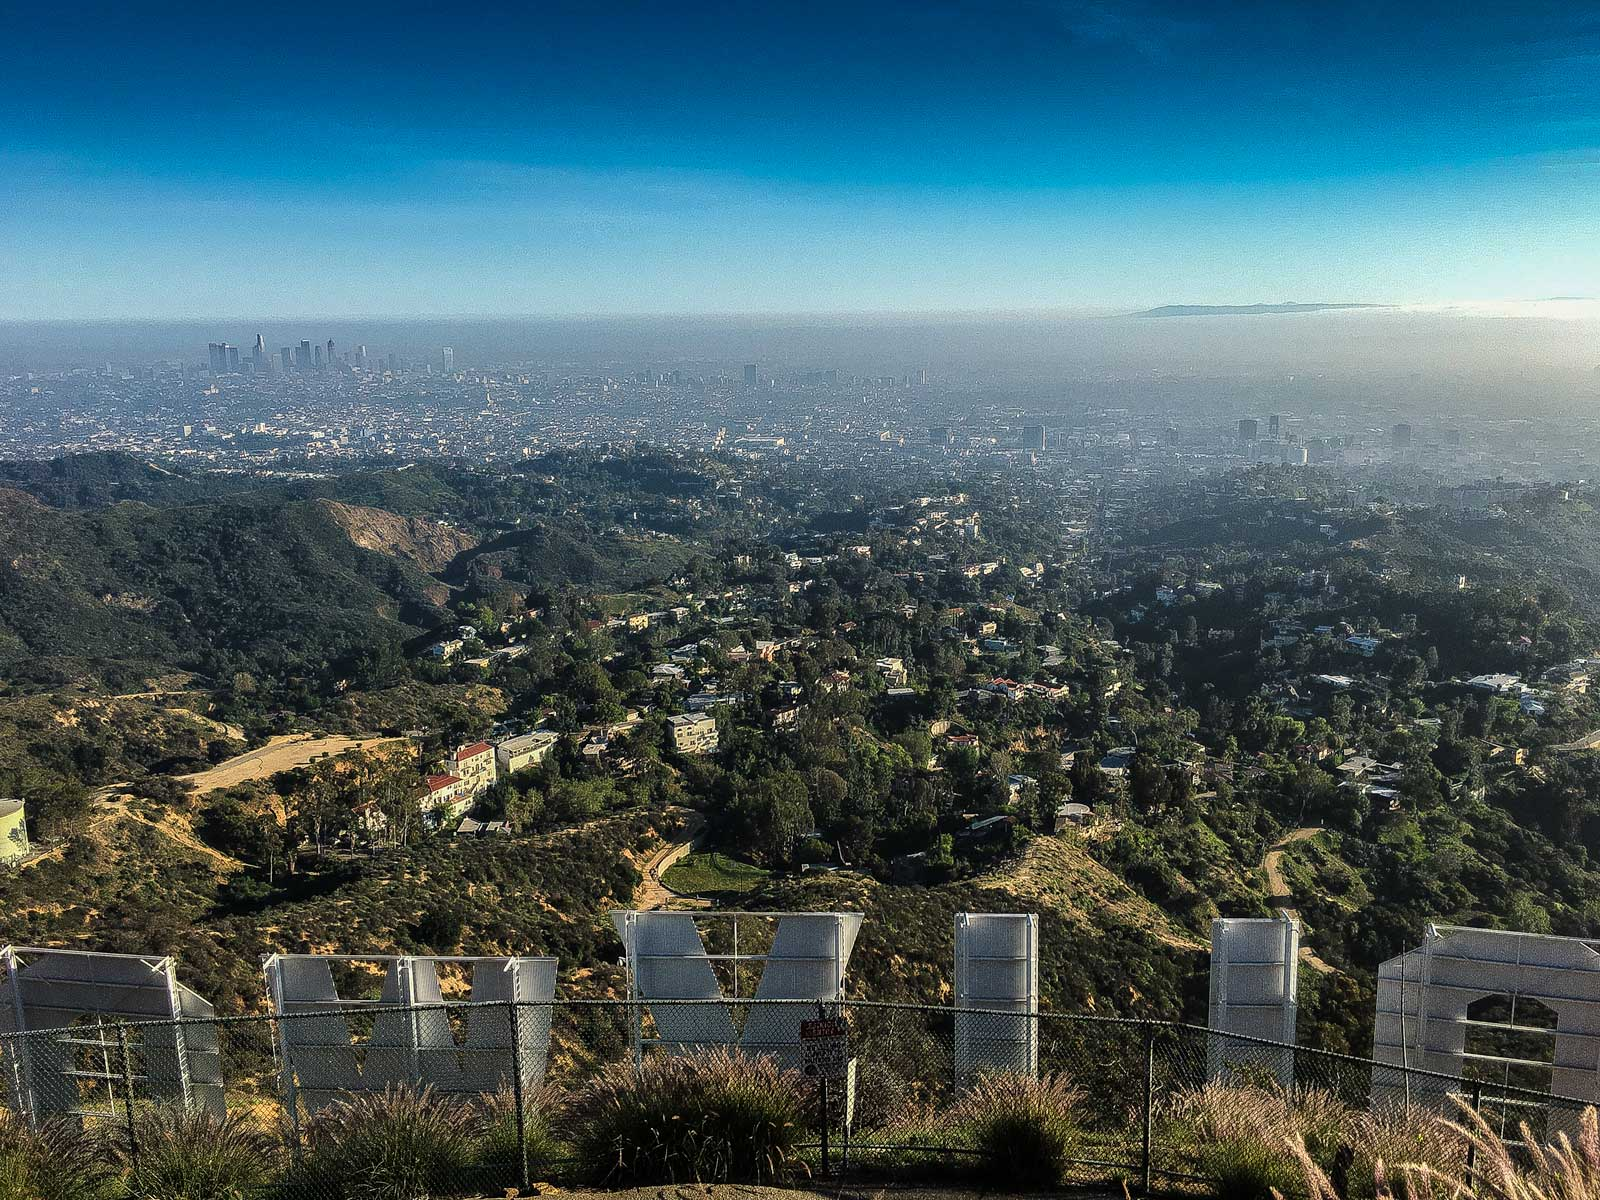 Behind the Hollywood sign